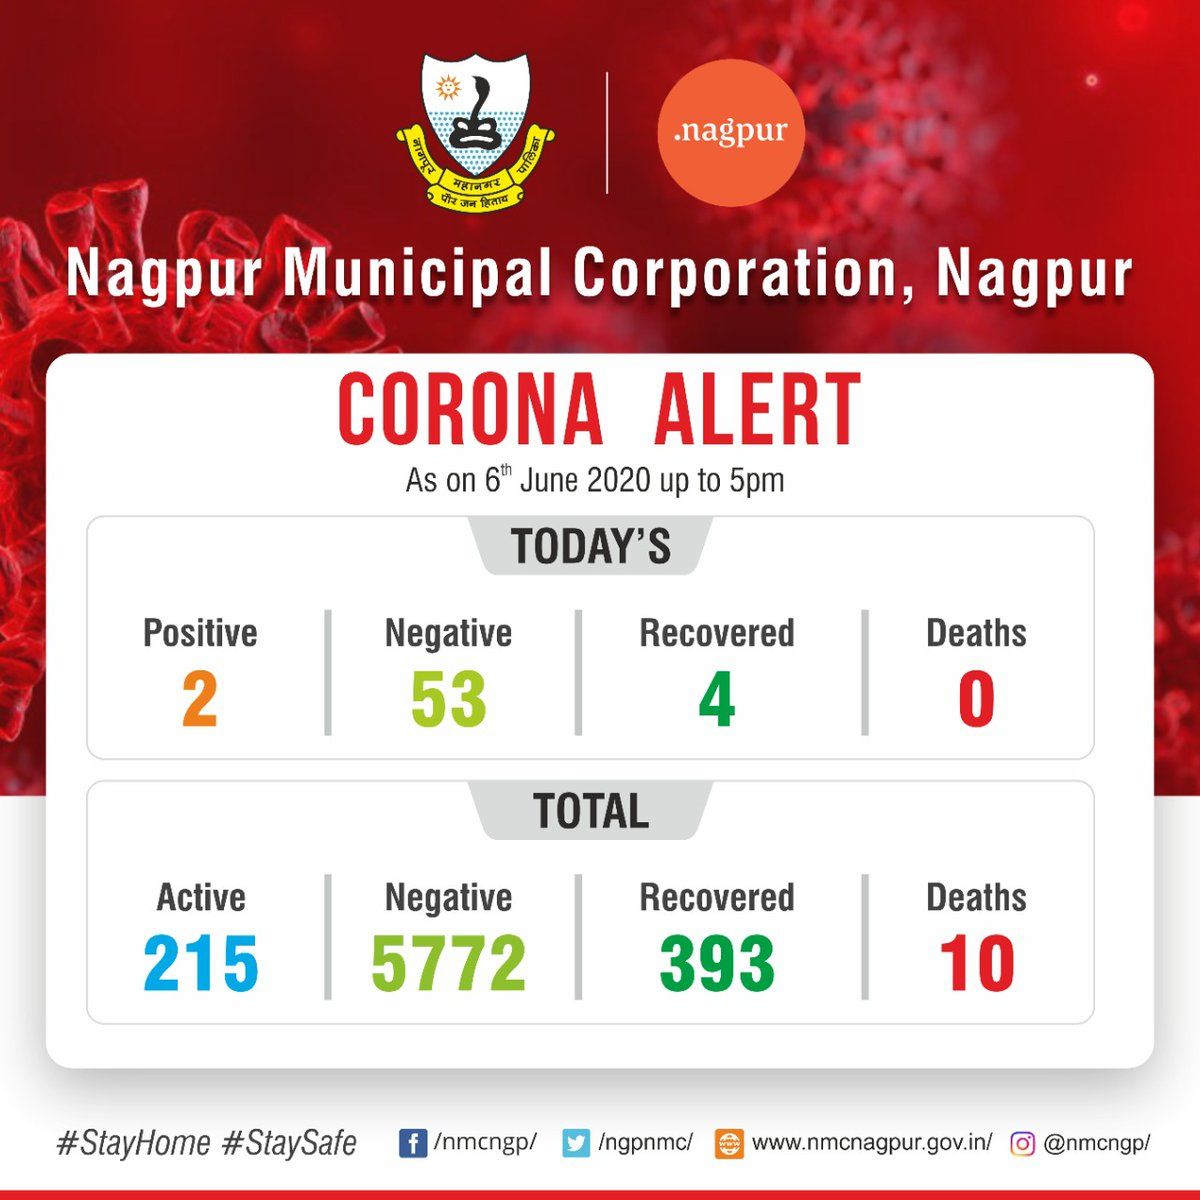 NMC #Covid_19 alert: total status update of the COVID19 cases as on 06 June 2020 #CoronaUpdatesInIndia #WarAgainstVirus #IndiaFightsCoronavirus https://t.co/6oX9PH7a4D